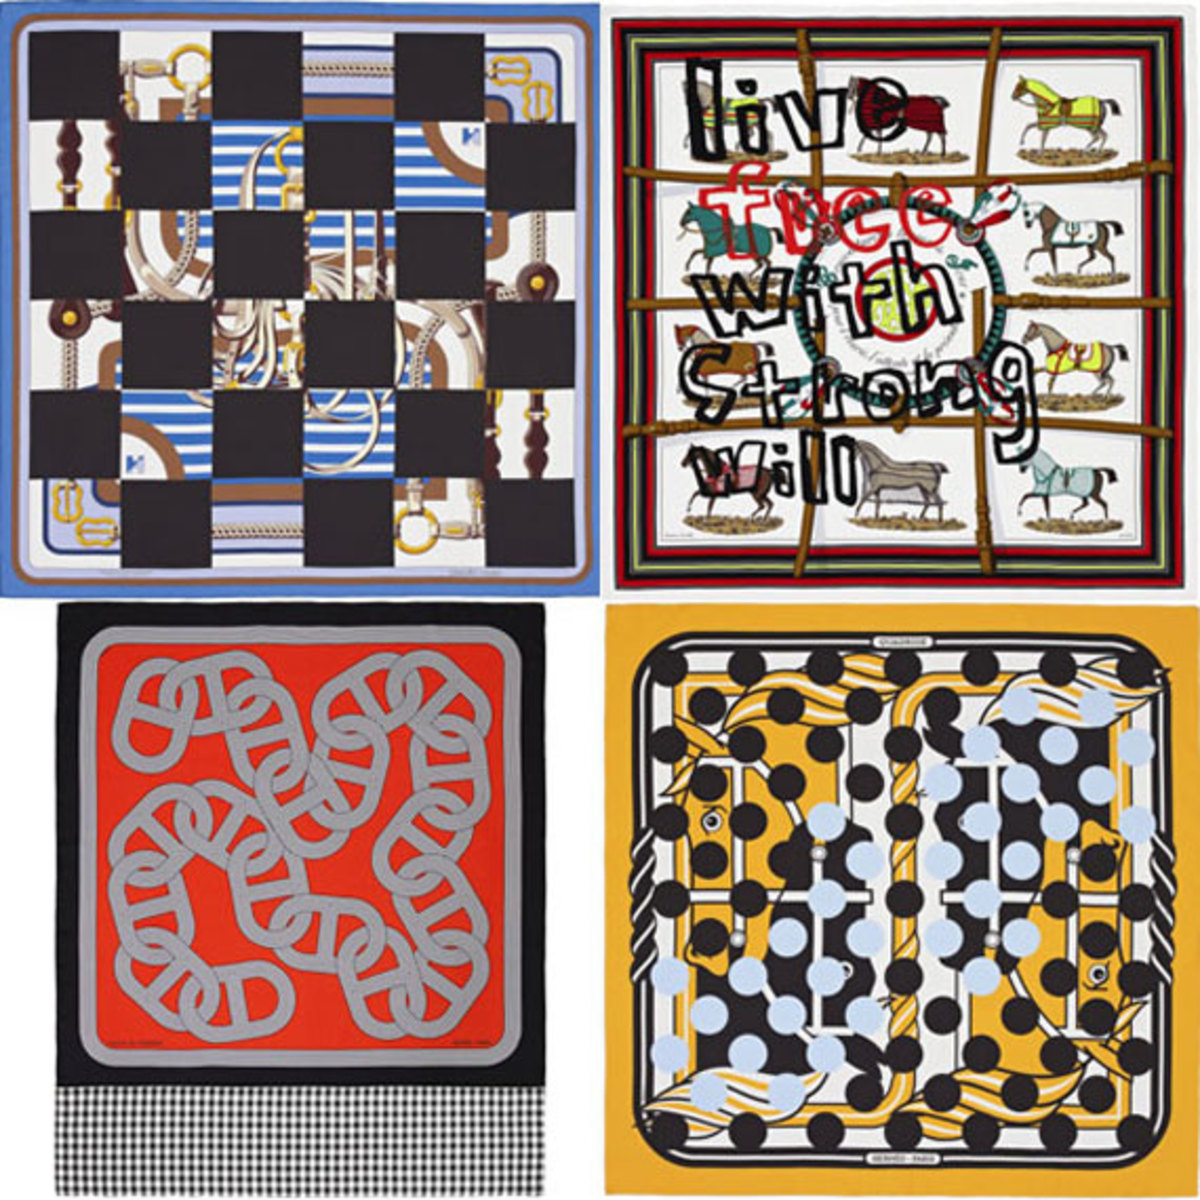 first-look-comme-des-garcons-hermes-comme-des-carres-scarf-collection-02